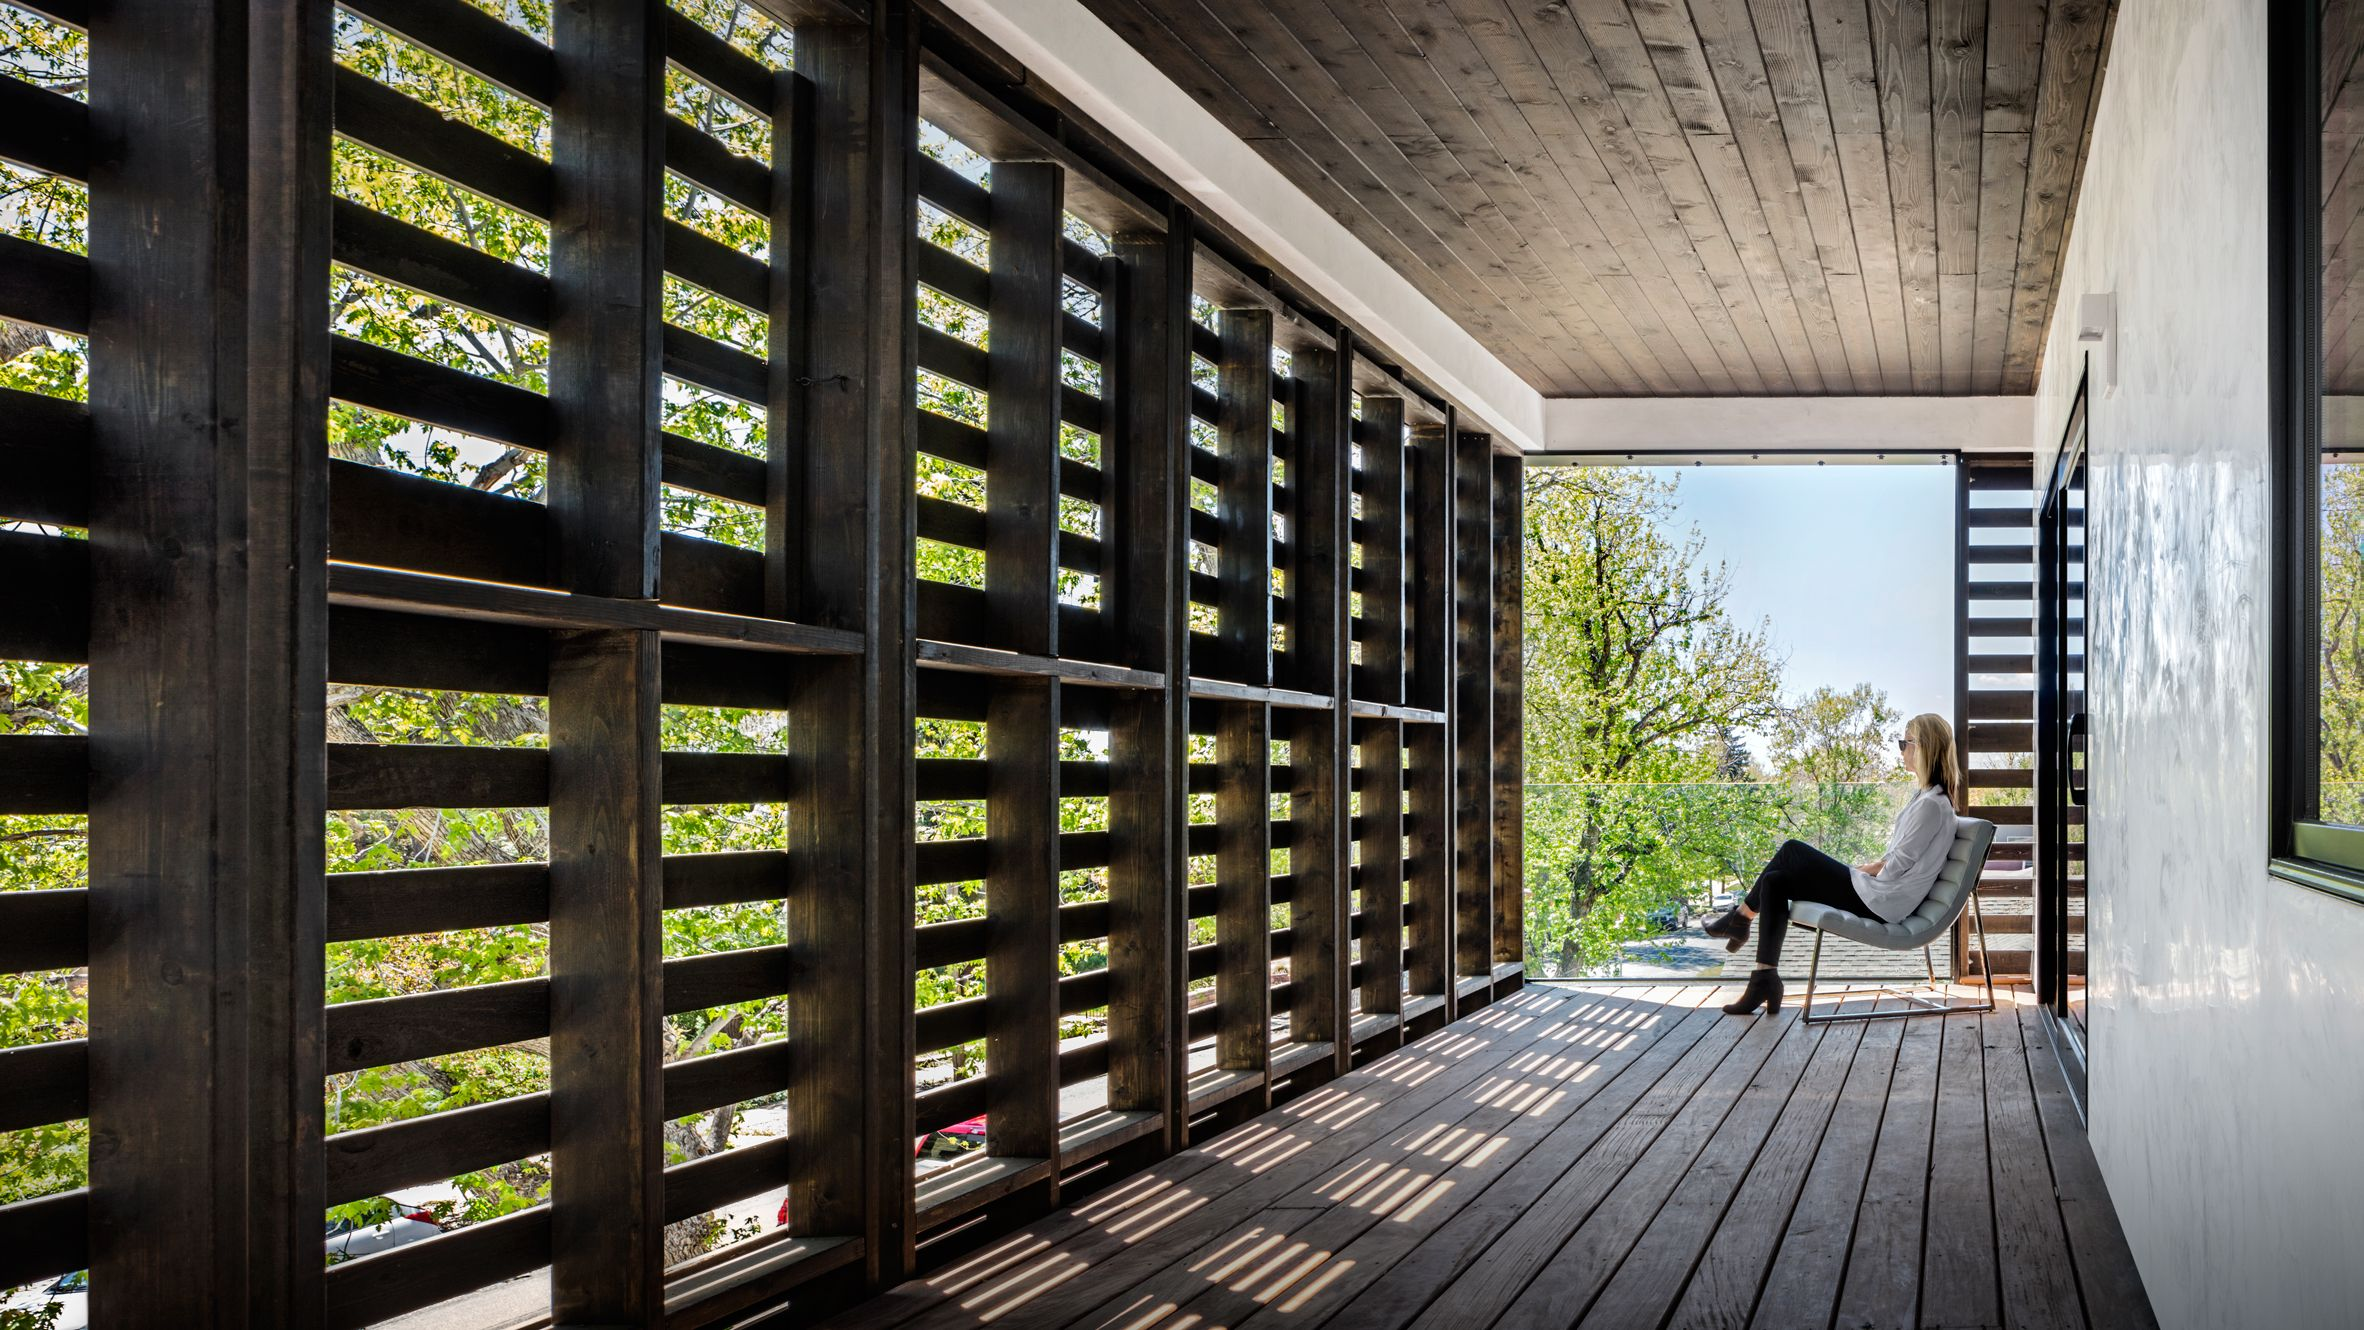 Meridian 105 s Denver house features screens made from wooden